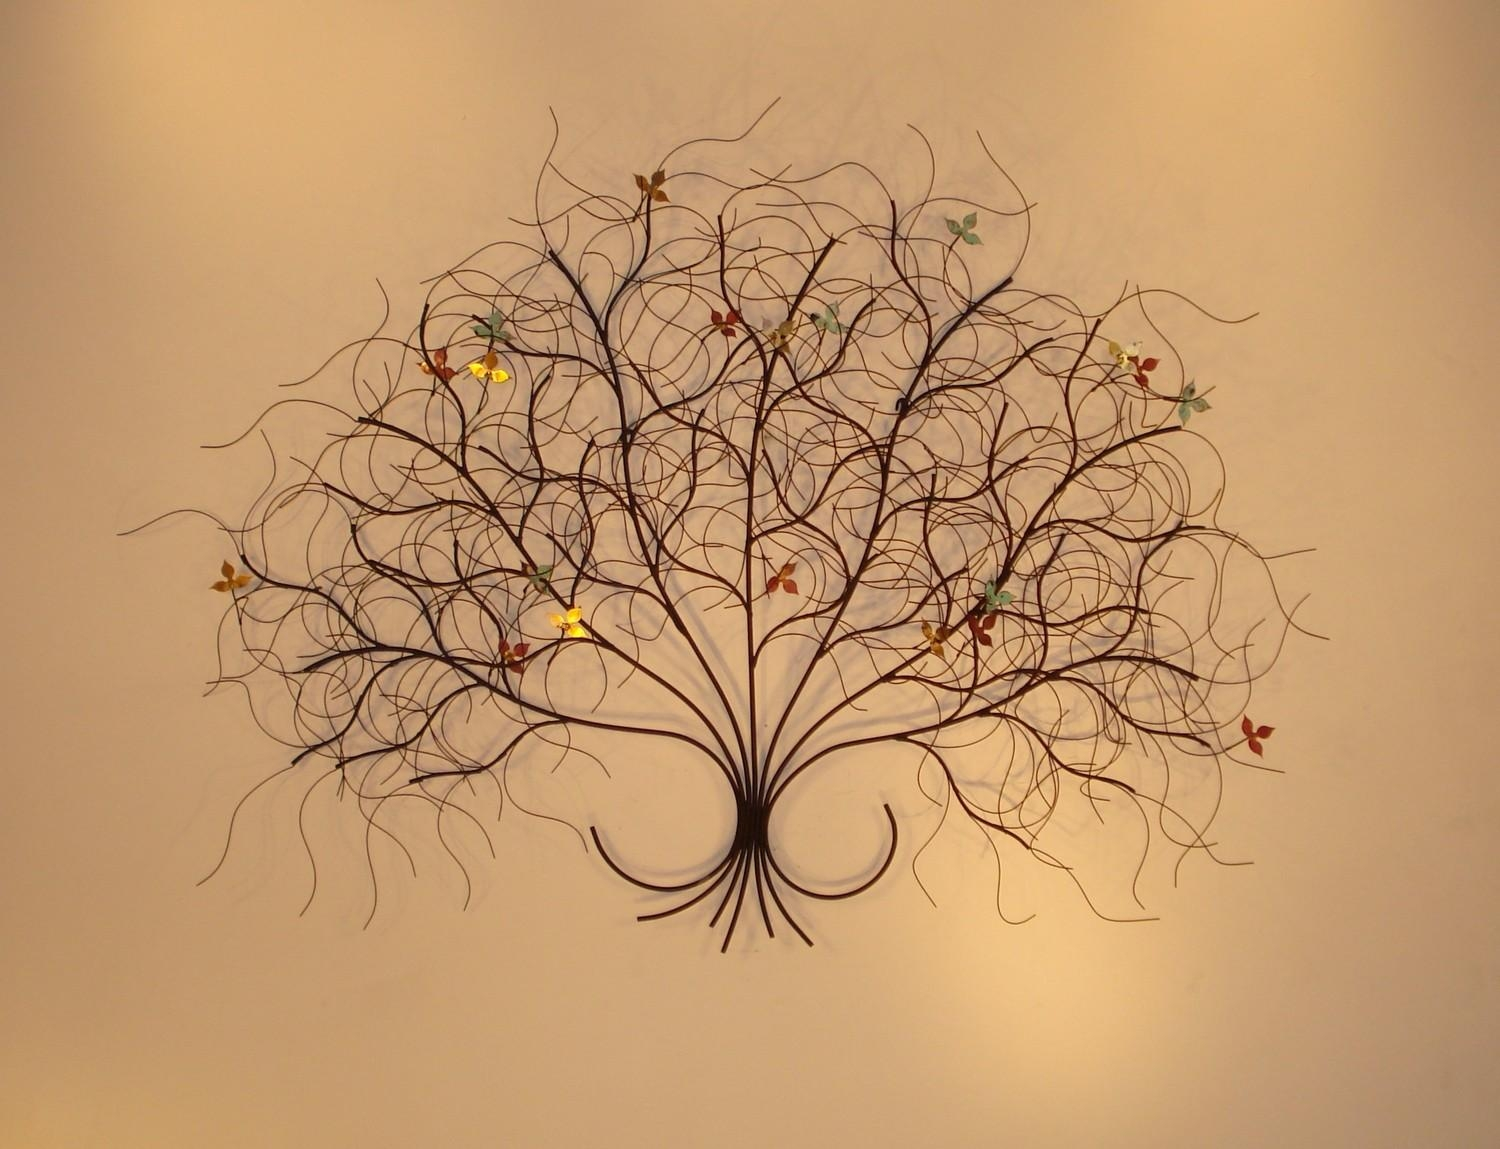 Metal Wall Sculptures And Wall Art – Branches | Gurtan Designs With Metal Tree Wall Art Sculpture (Image 10 of 20)